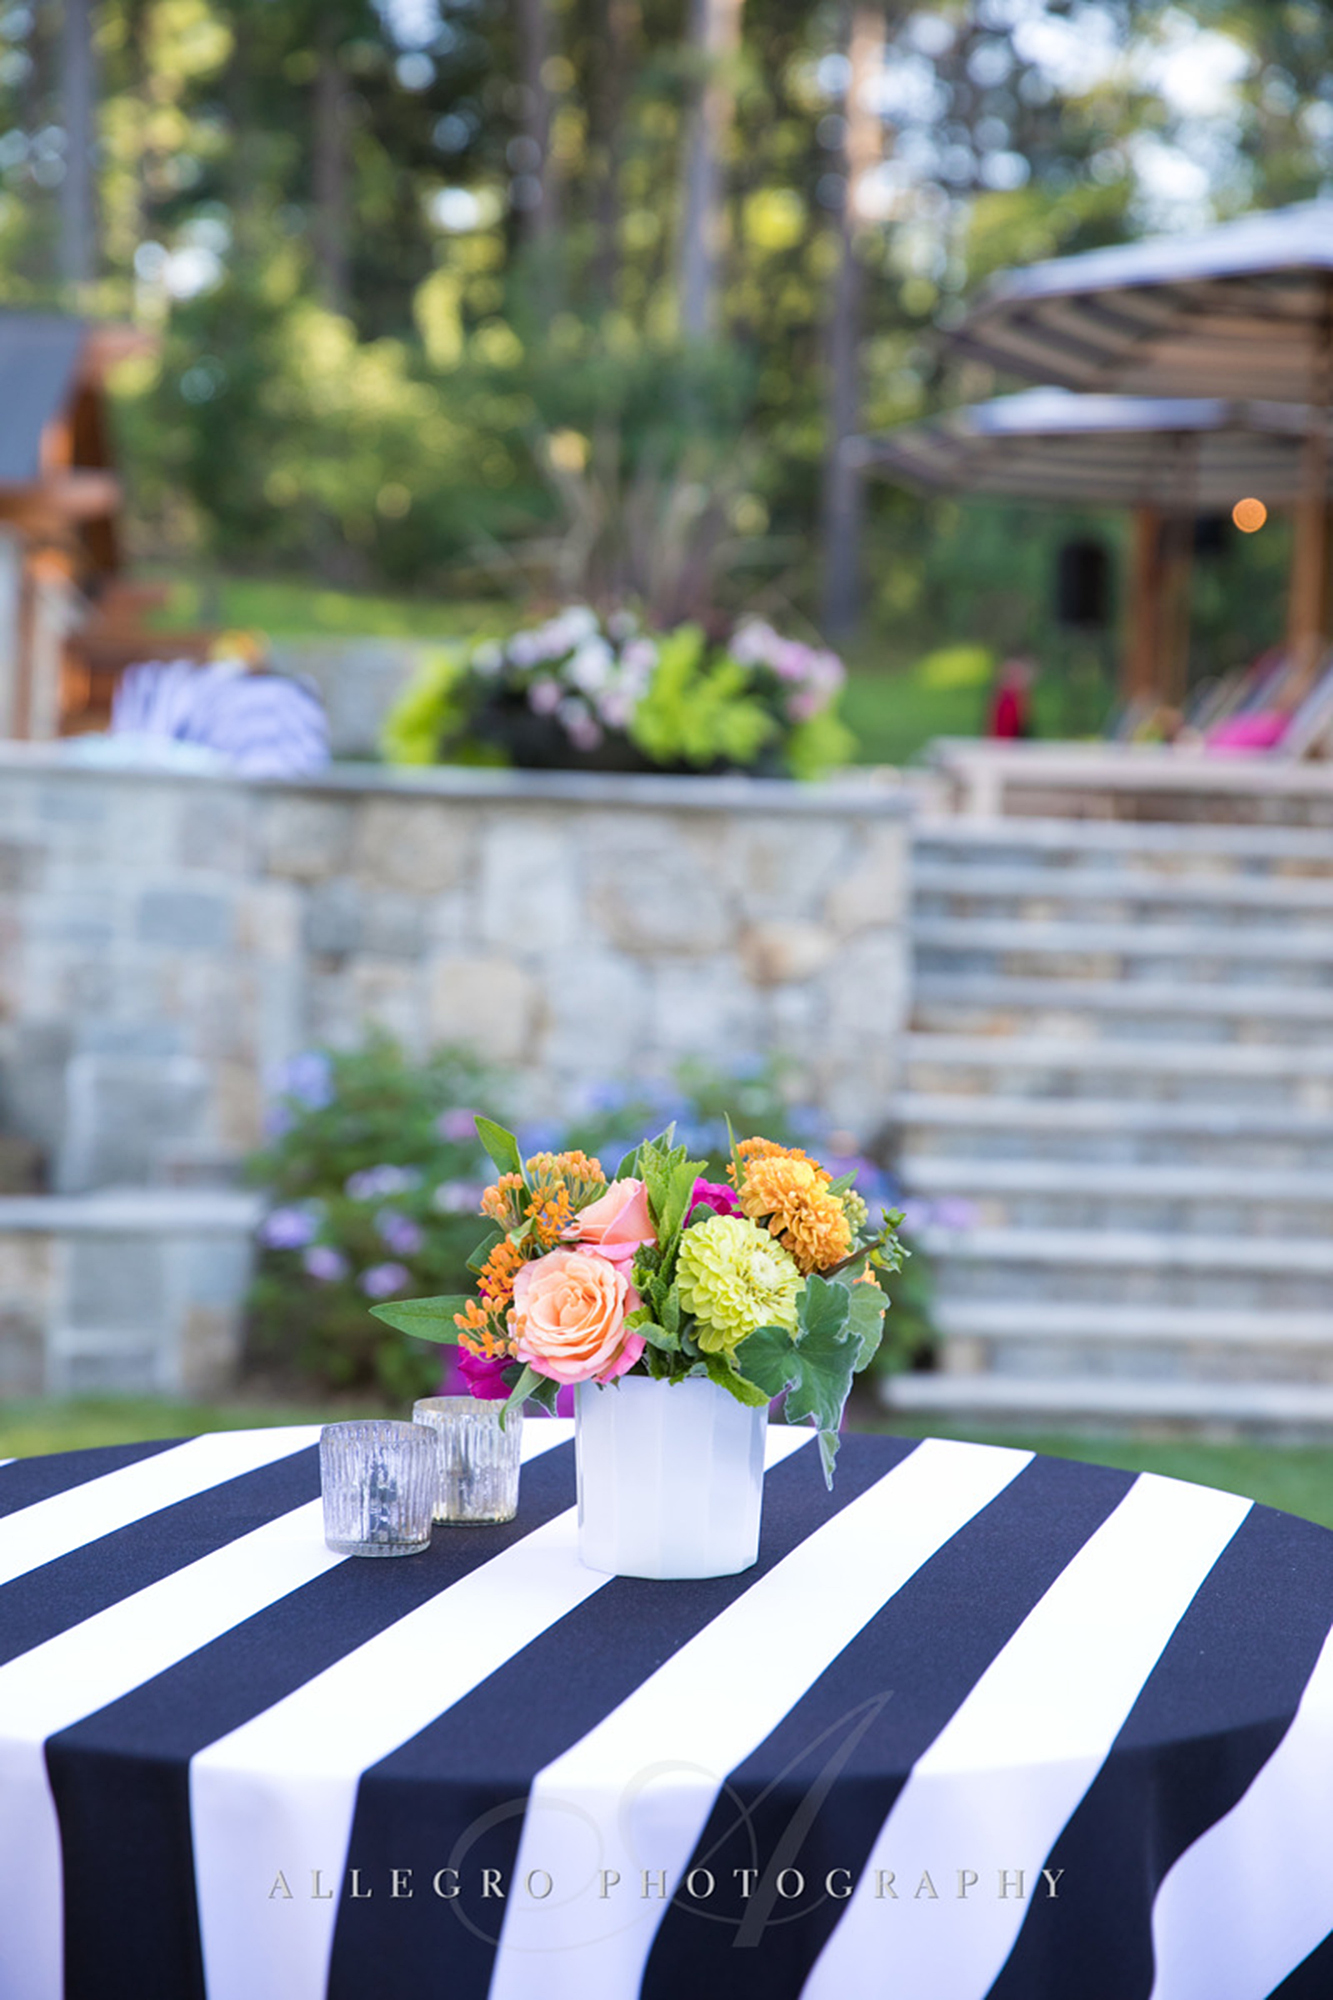 02_Private Engagement Party Black and White Table_AE Events.jpg